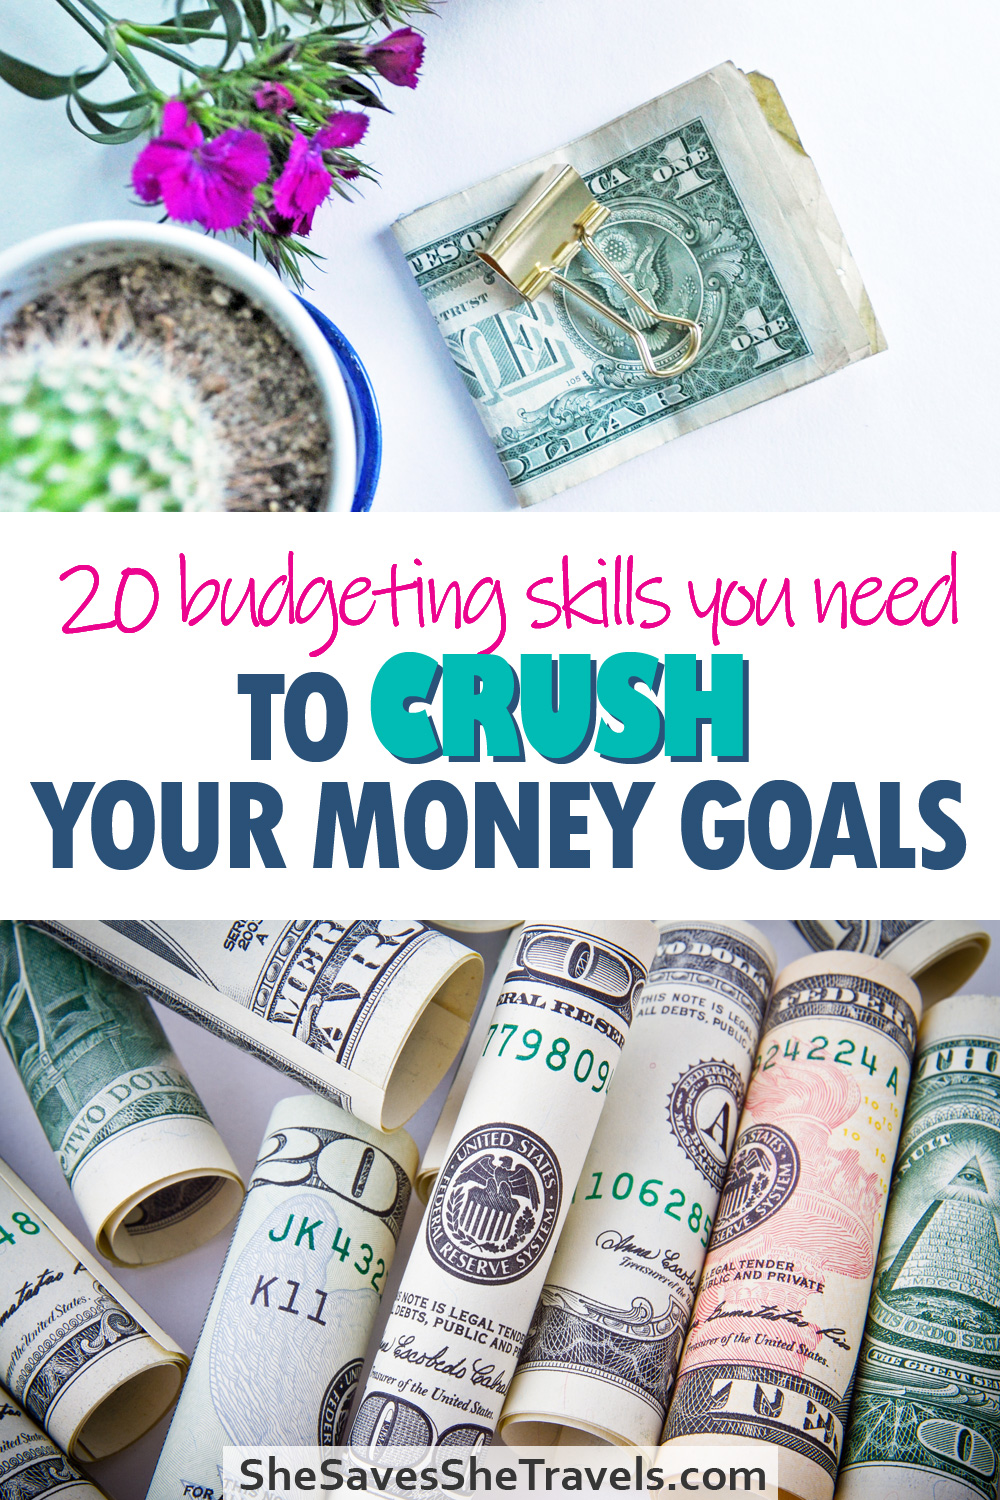 budgeting skills you need to crush your money goals